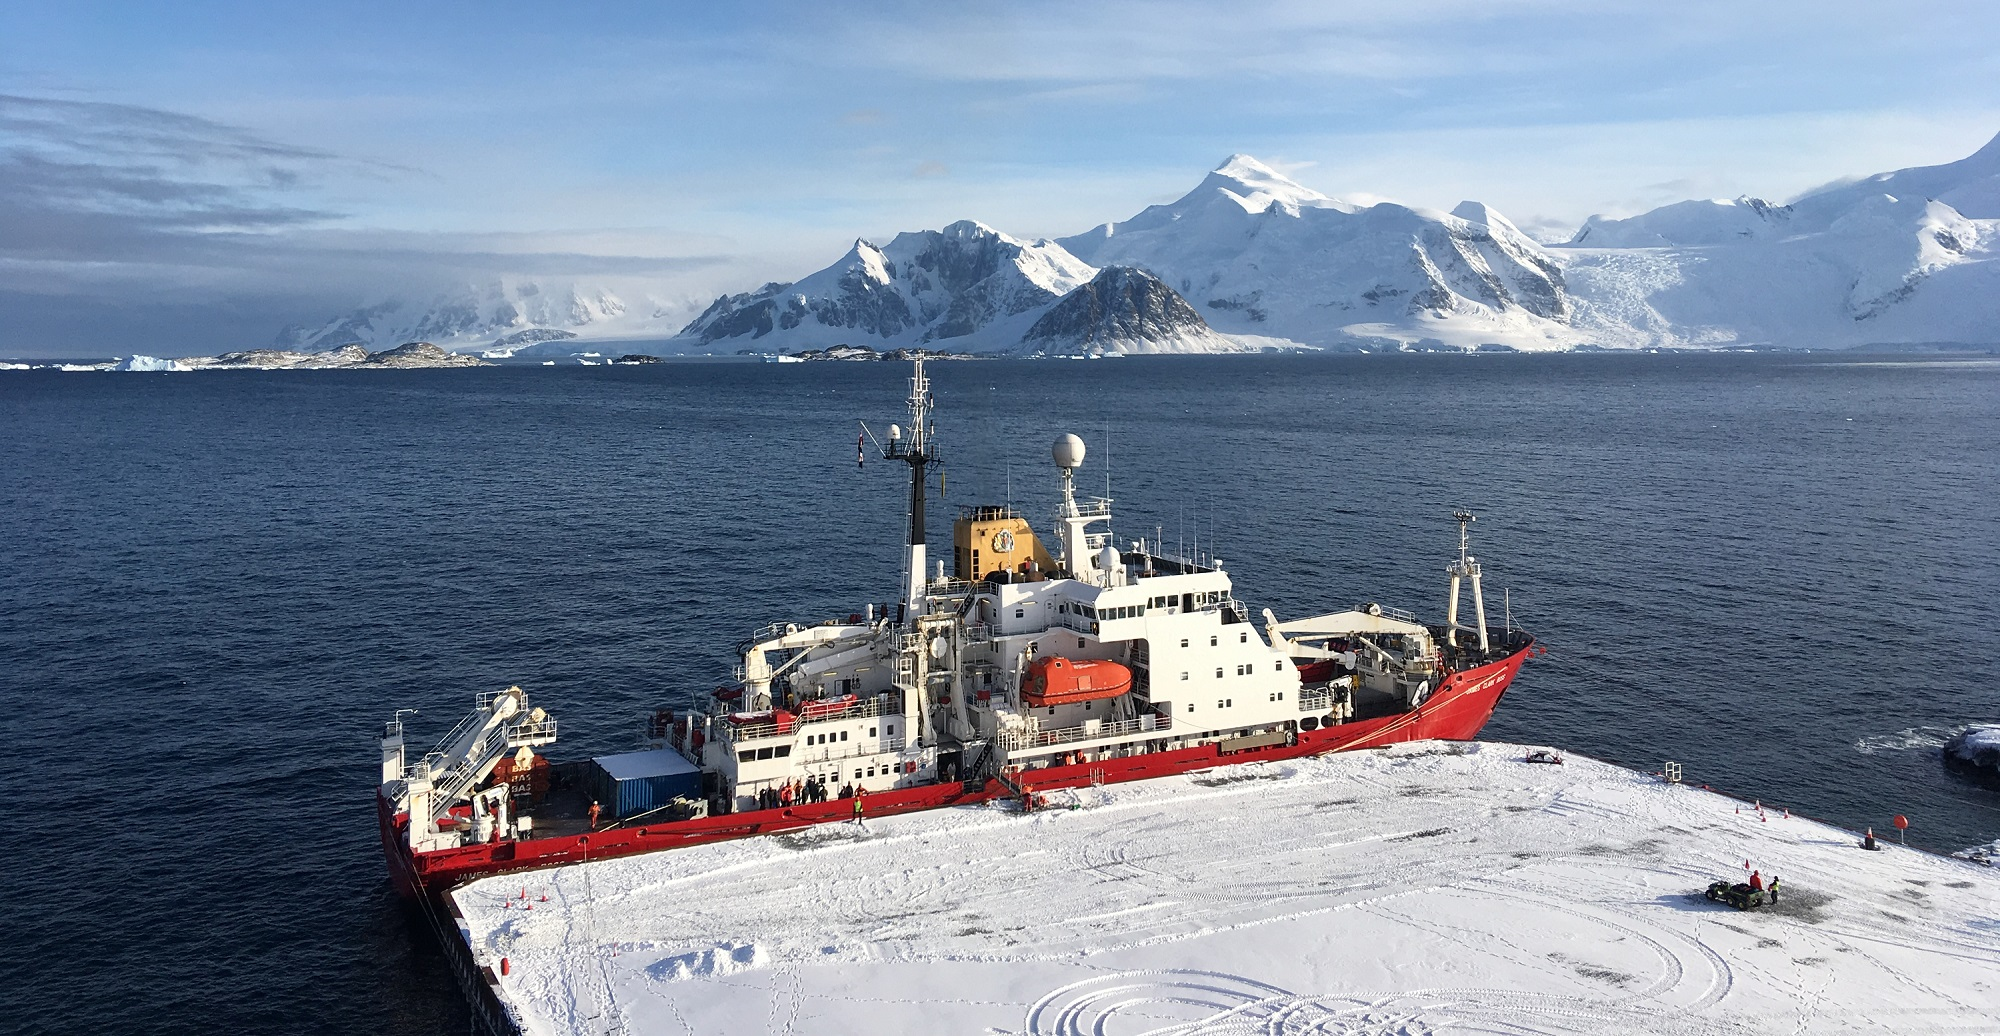 The RRS James Clark Ross moored at the new wharf at Rothera Research Station